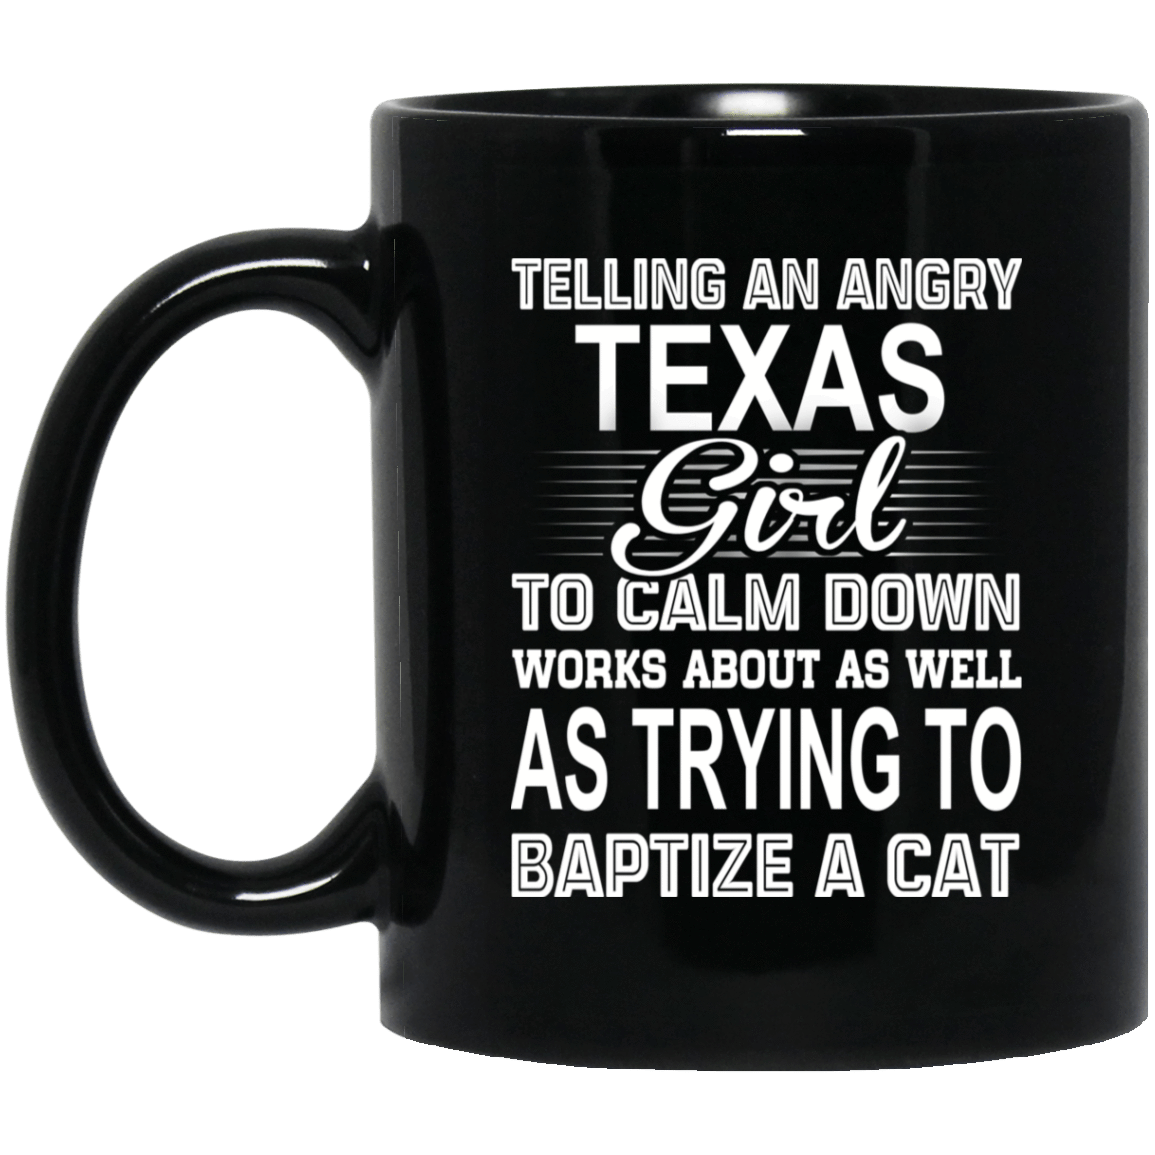 Telling An Angry Texas Girl To Calm Down Works About As Well As Trying To Baptize A Cat Mug 1065-10181-76151612-49307 - Tee Ript